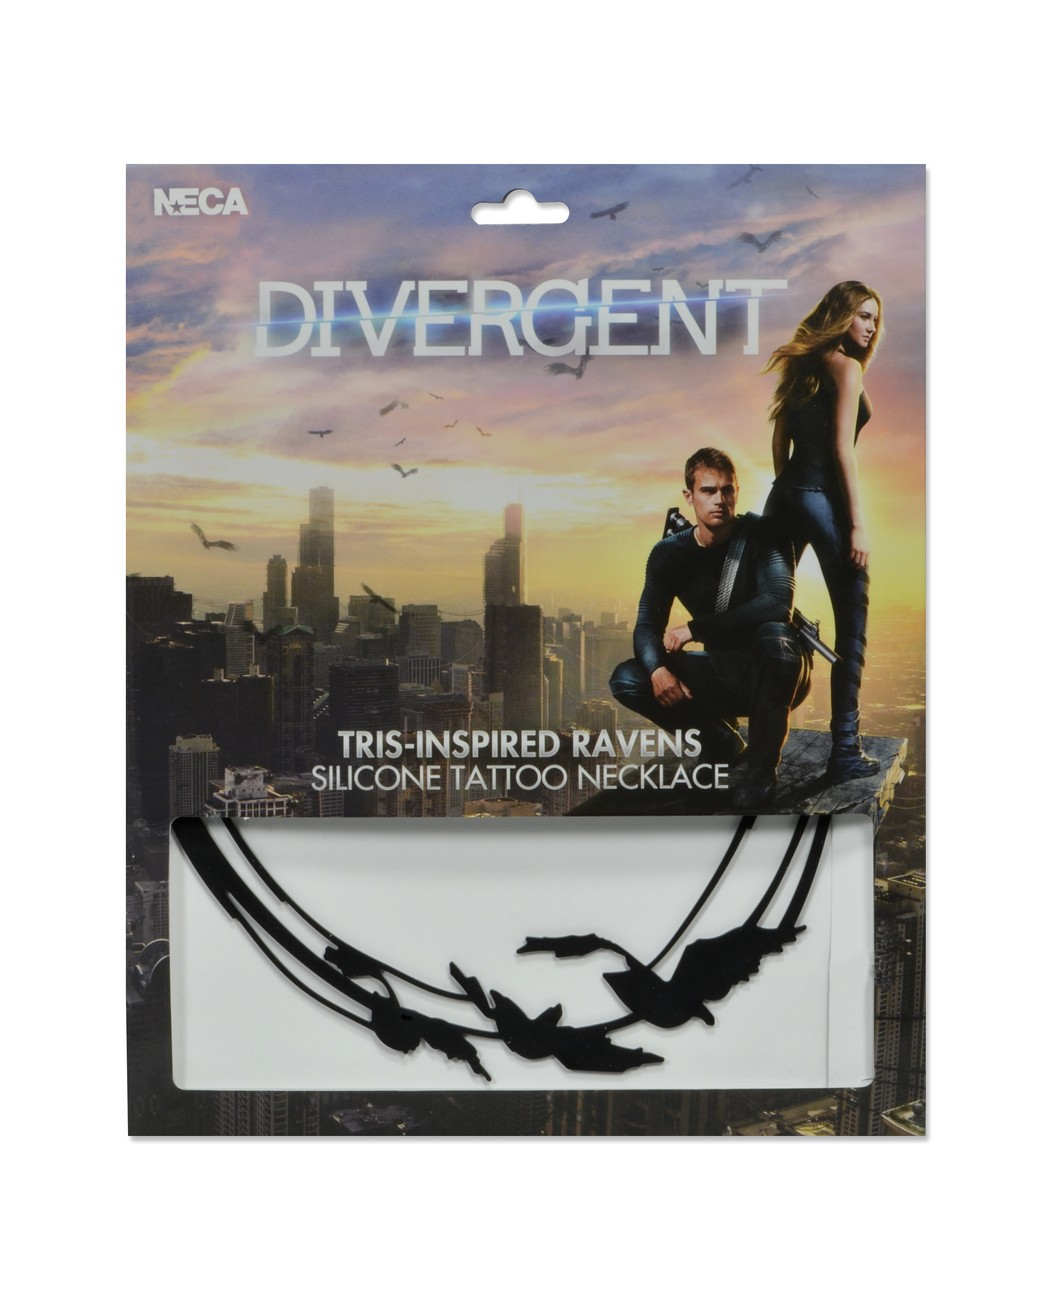 Divergent – Tris-Inspired Ravens Silicone Tattoo Necklace ...